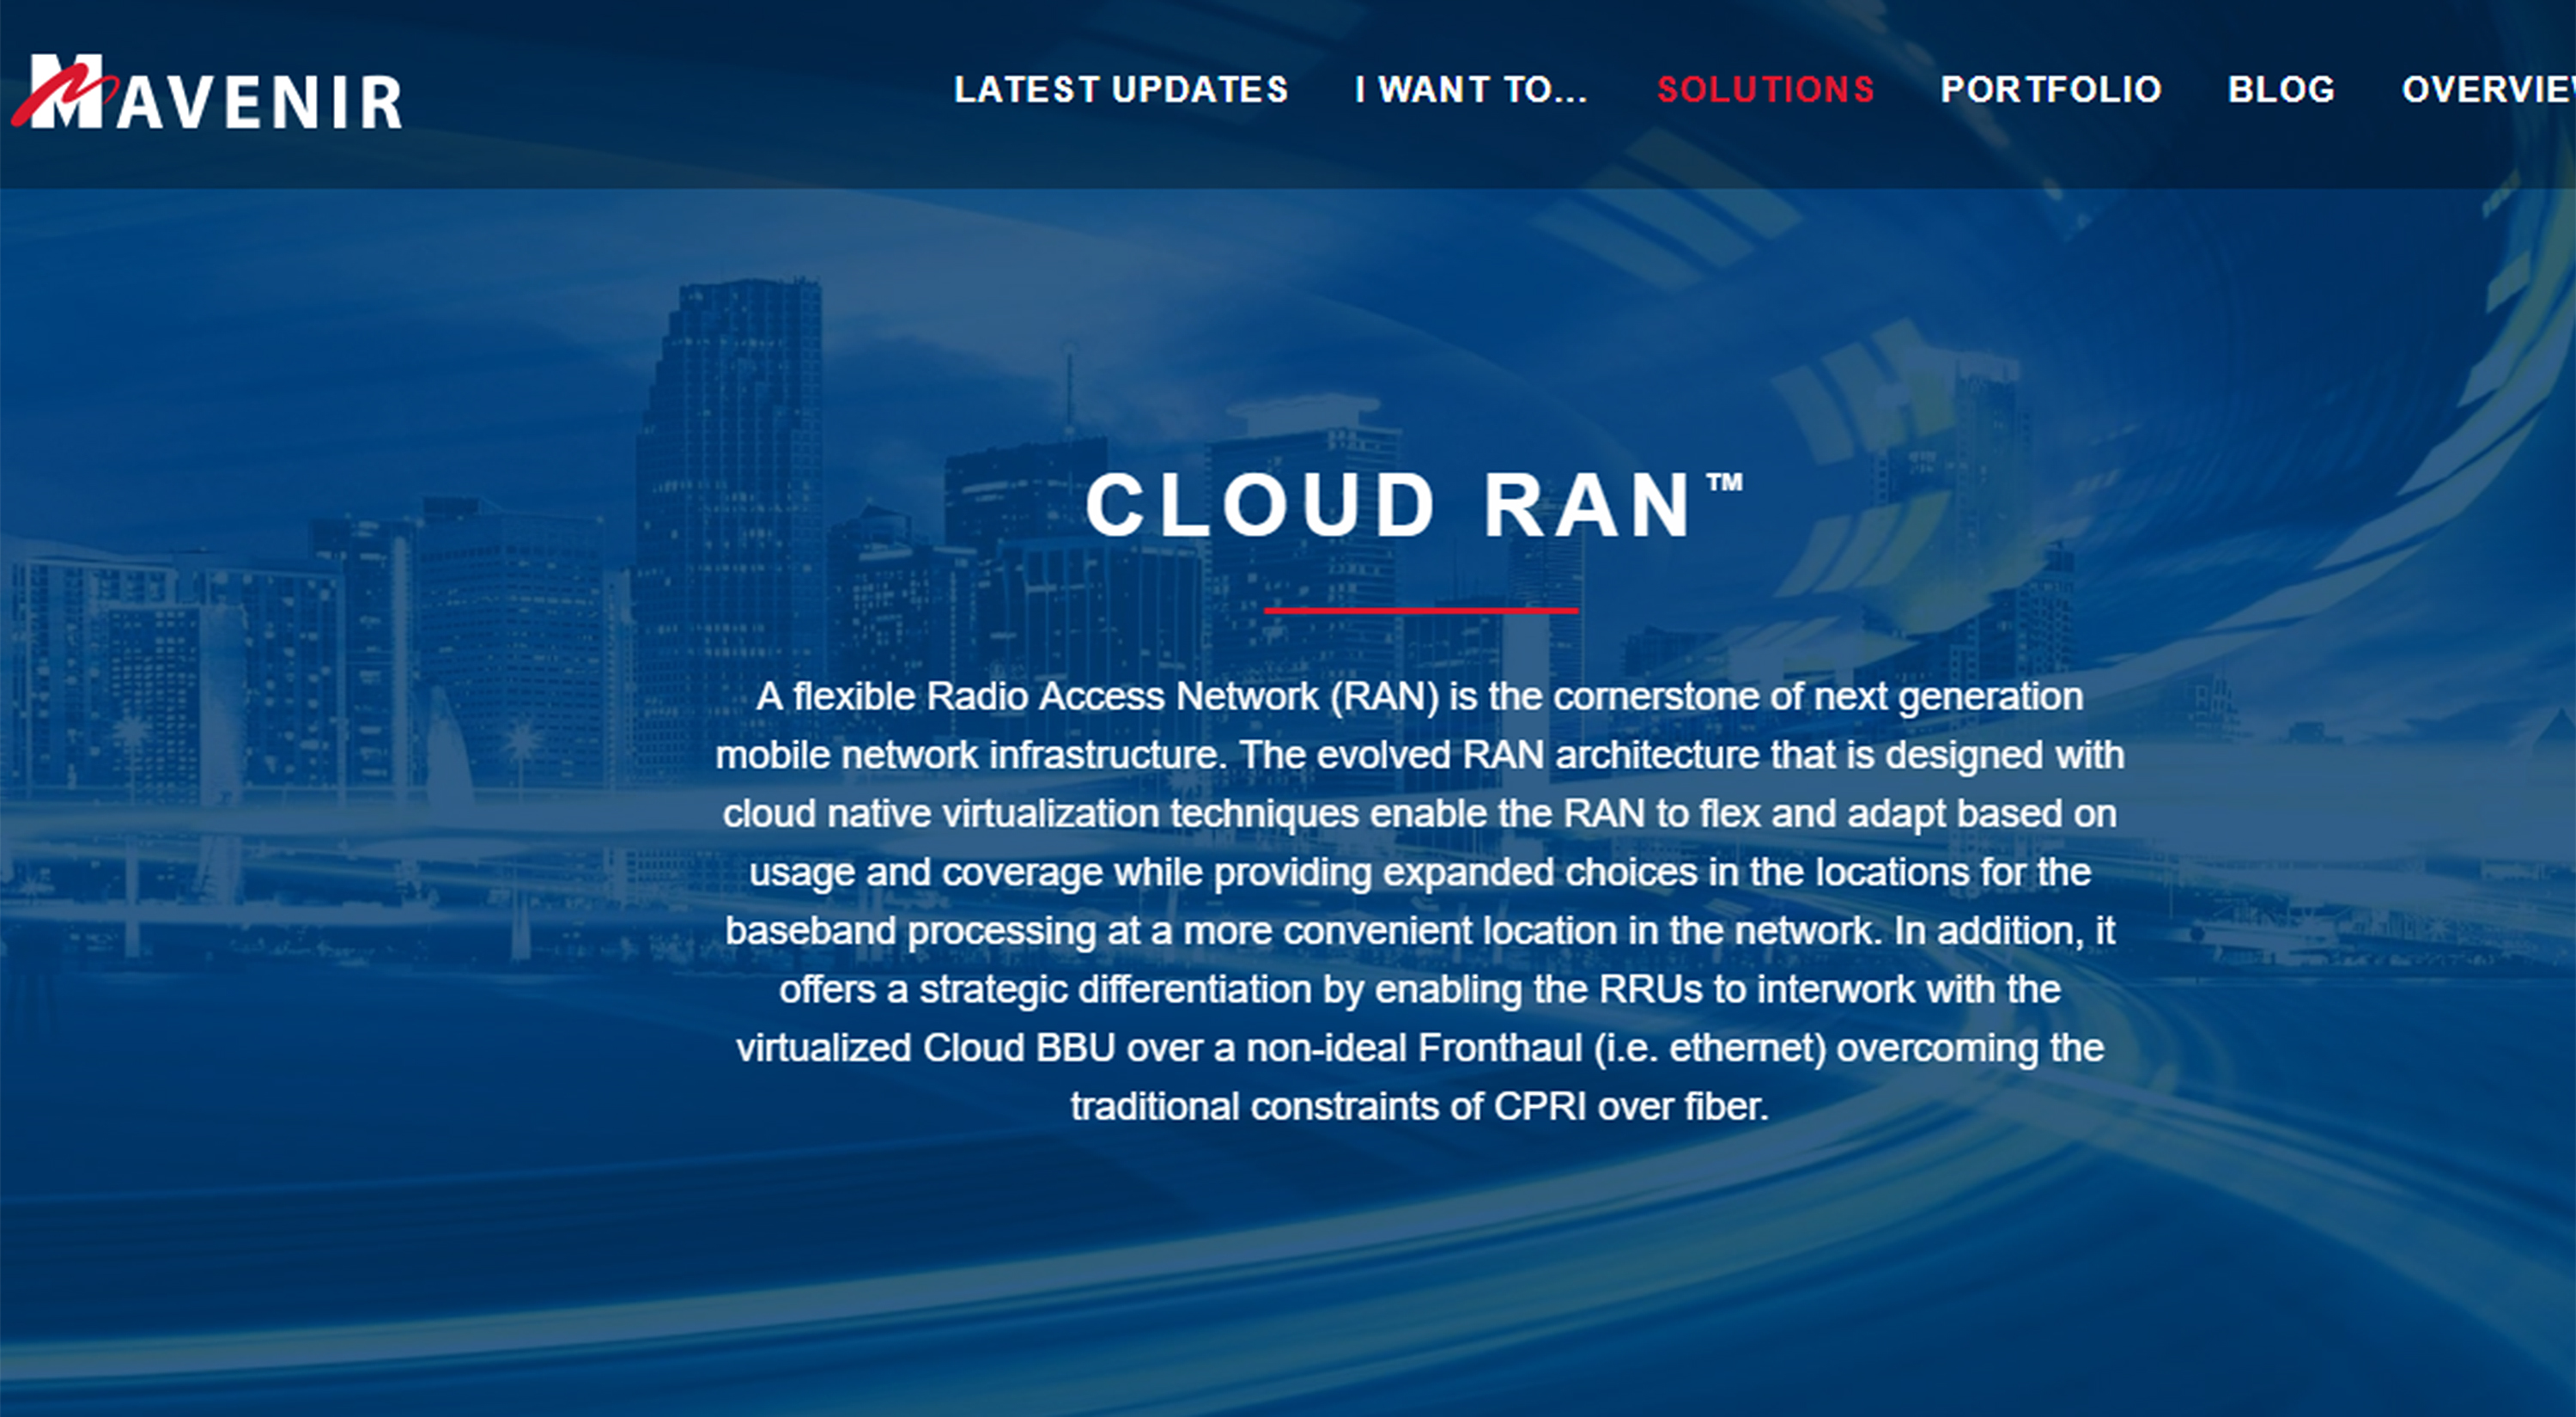 94% service providers to deploy Cloud RAN in 5G networks